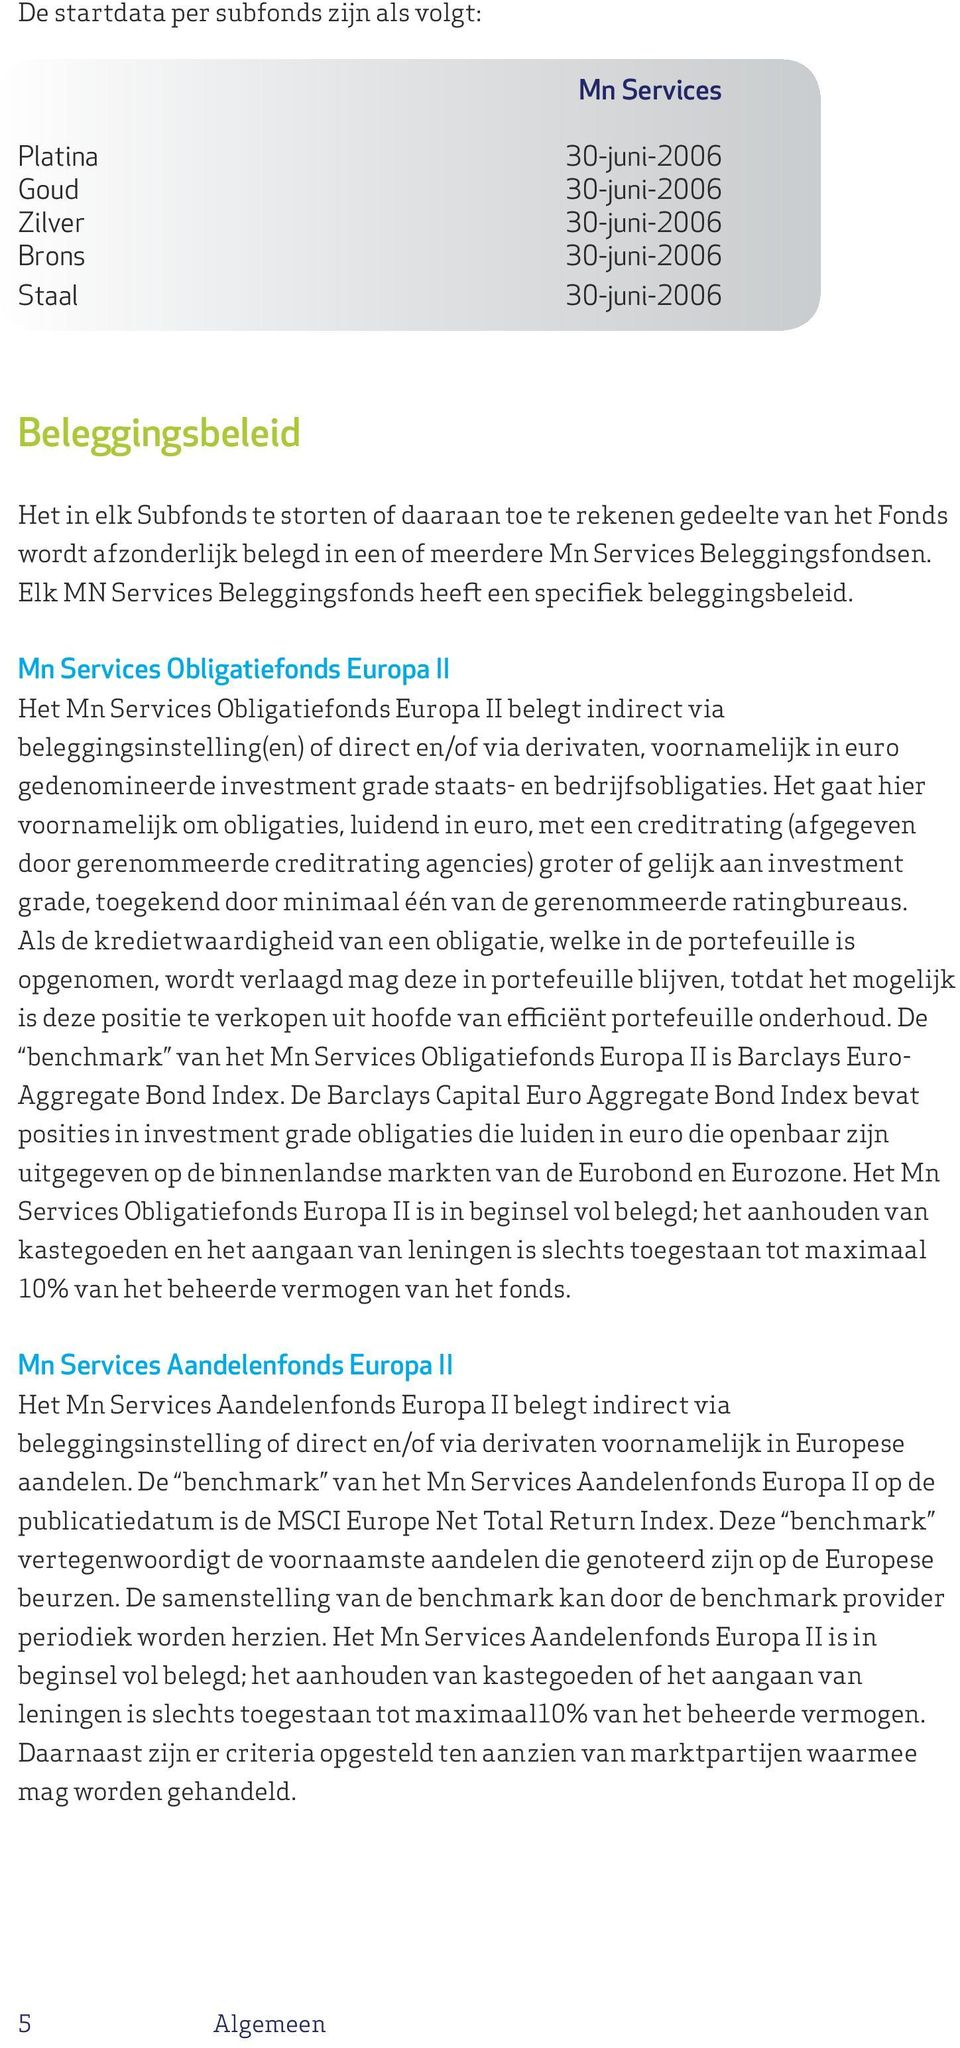 Mn Services Obligatiefonds Europa II Het Mn Services Obligatiefonds Europa II belegt indirect via beleggingsinstelling(en) of direct en/of via derivaten, voornamelijk in euro gedenomineerde